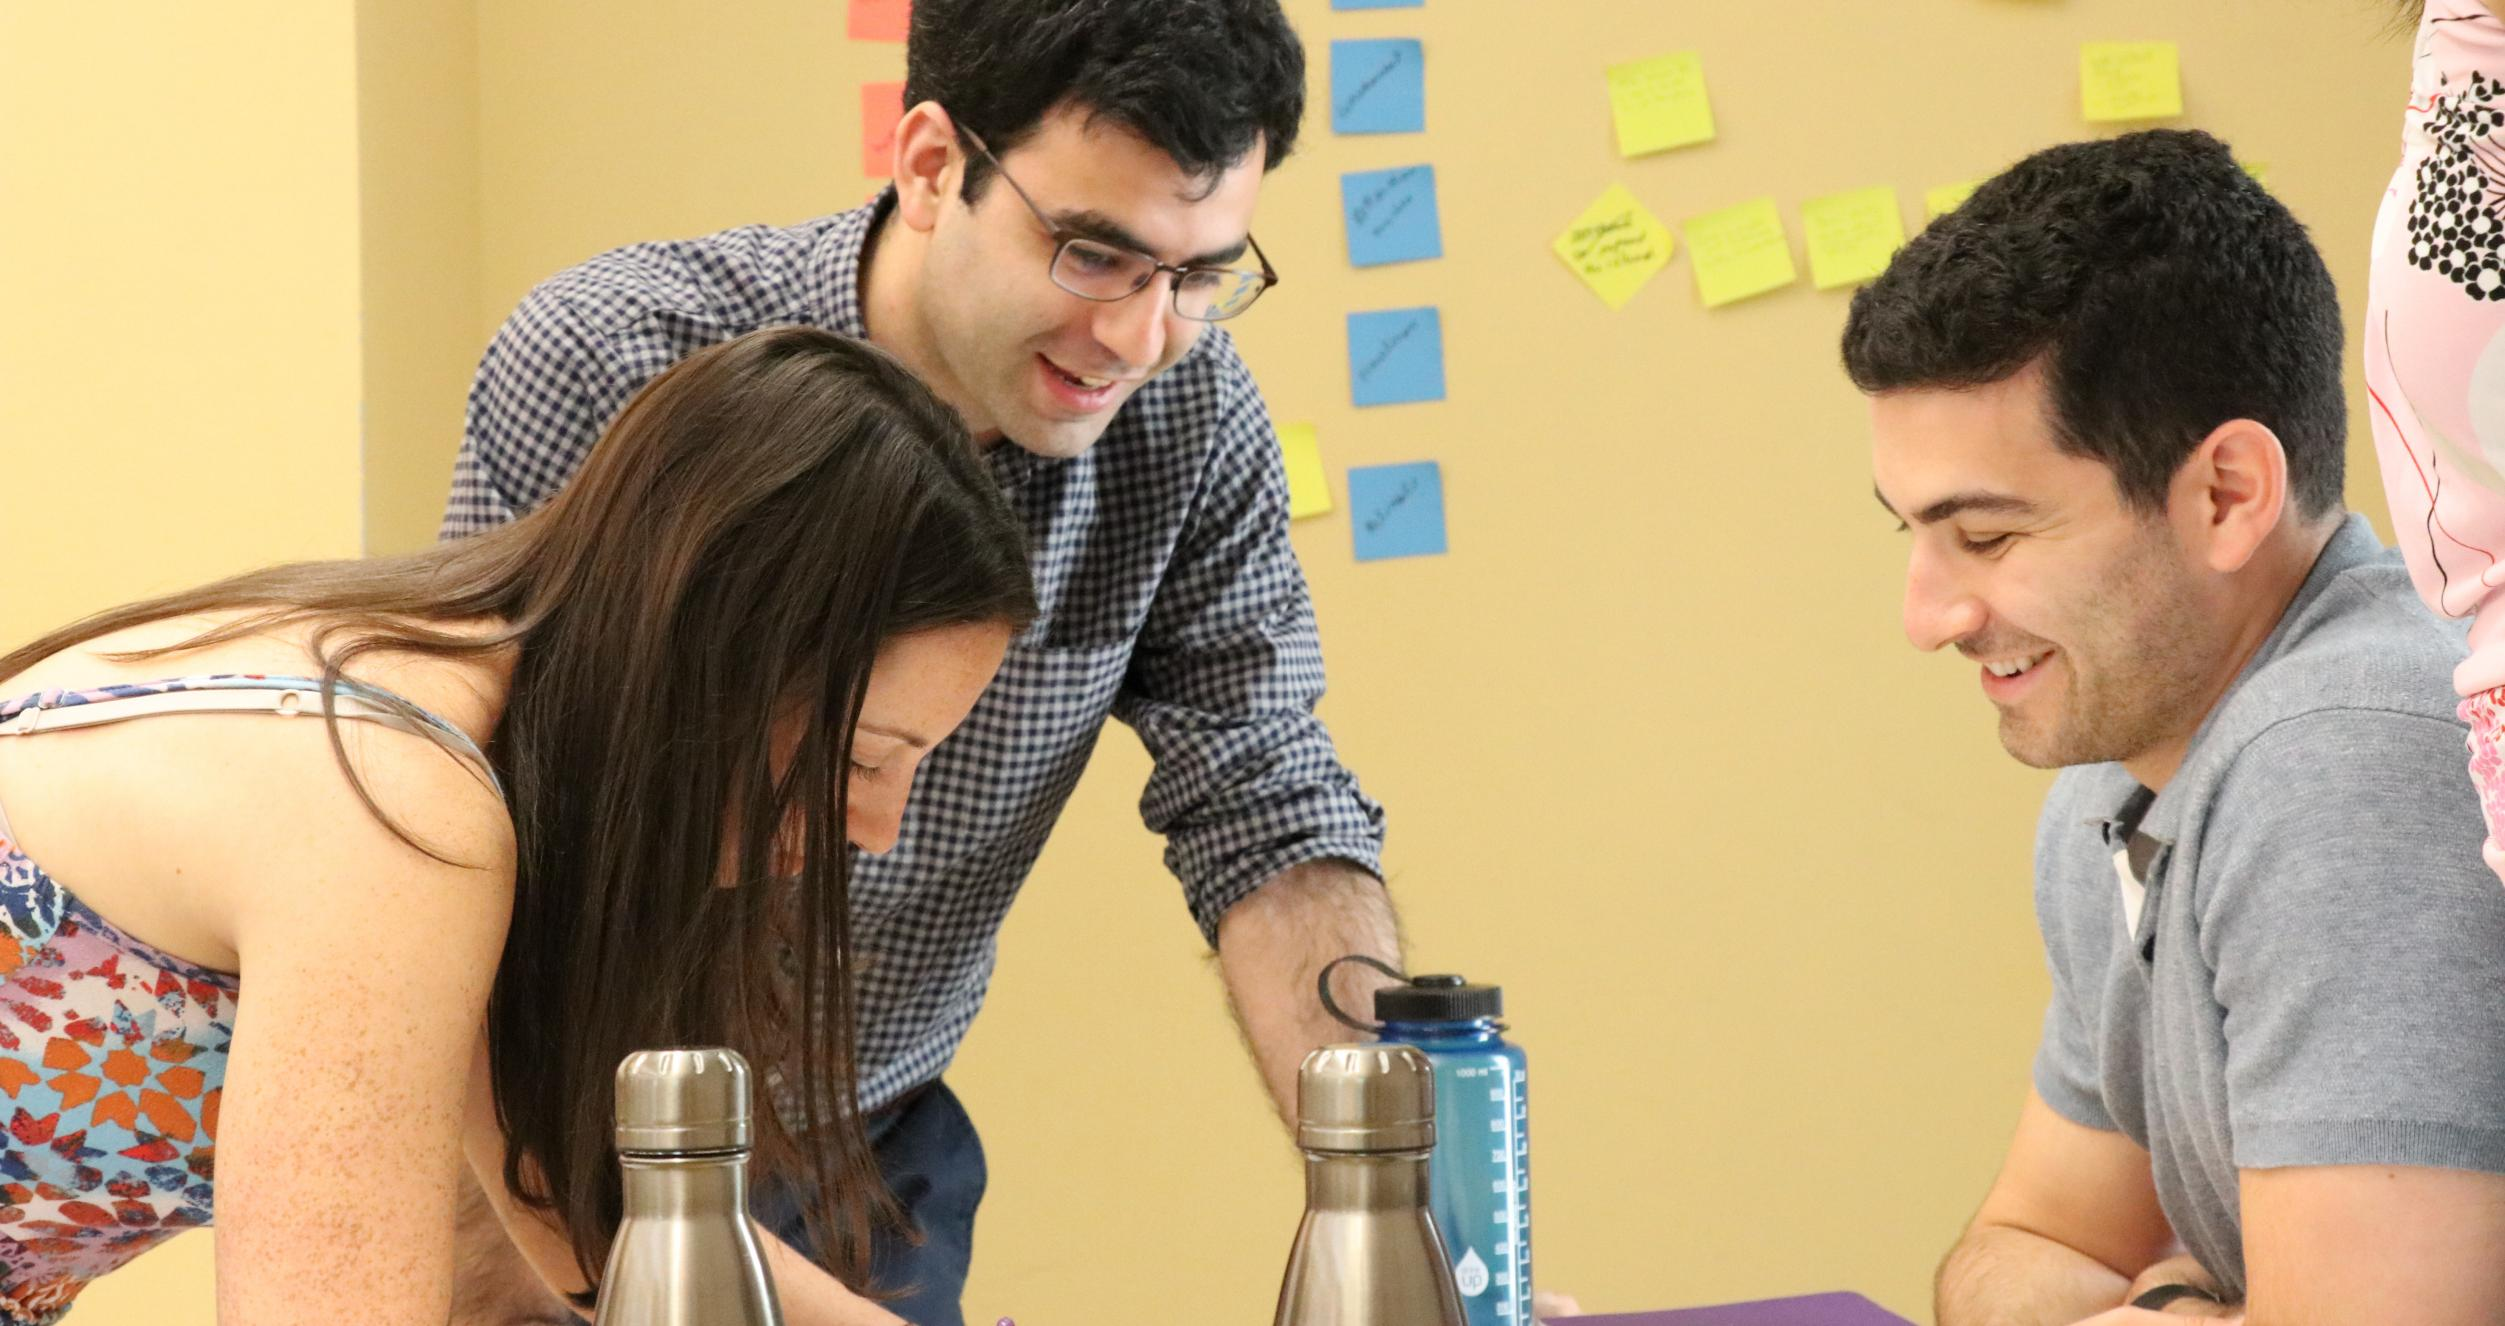 Three students working with post-it notes on the walls